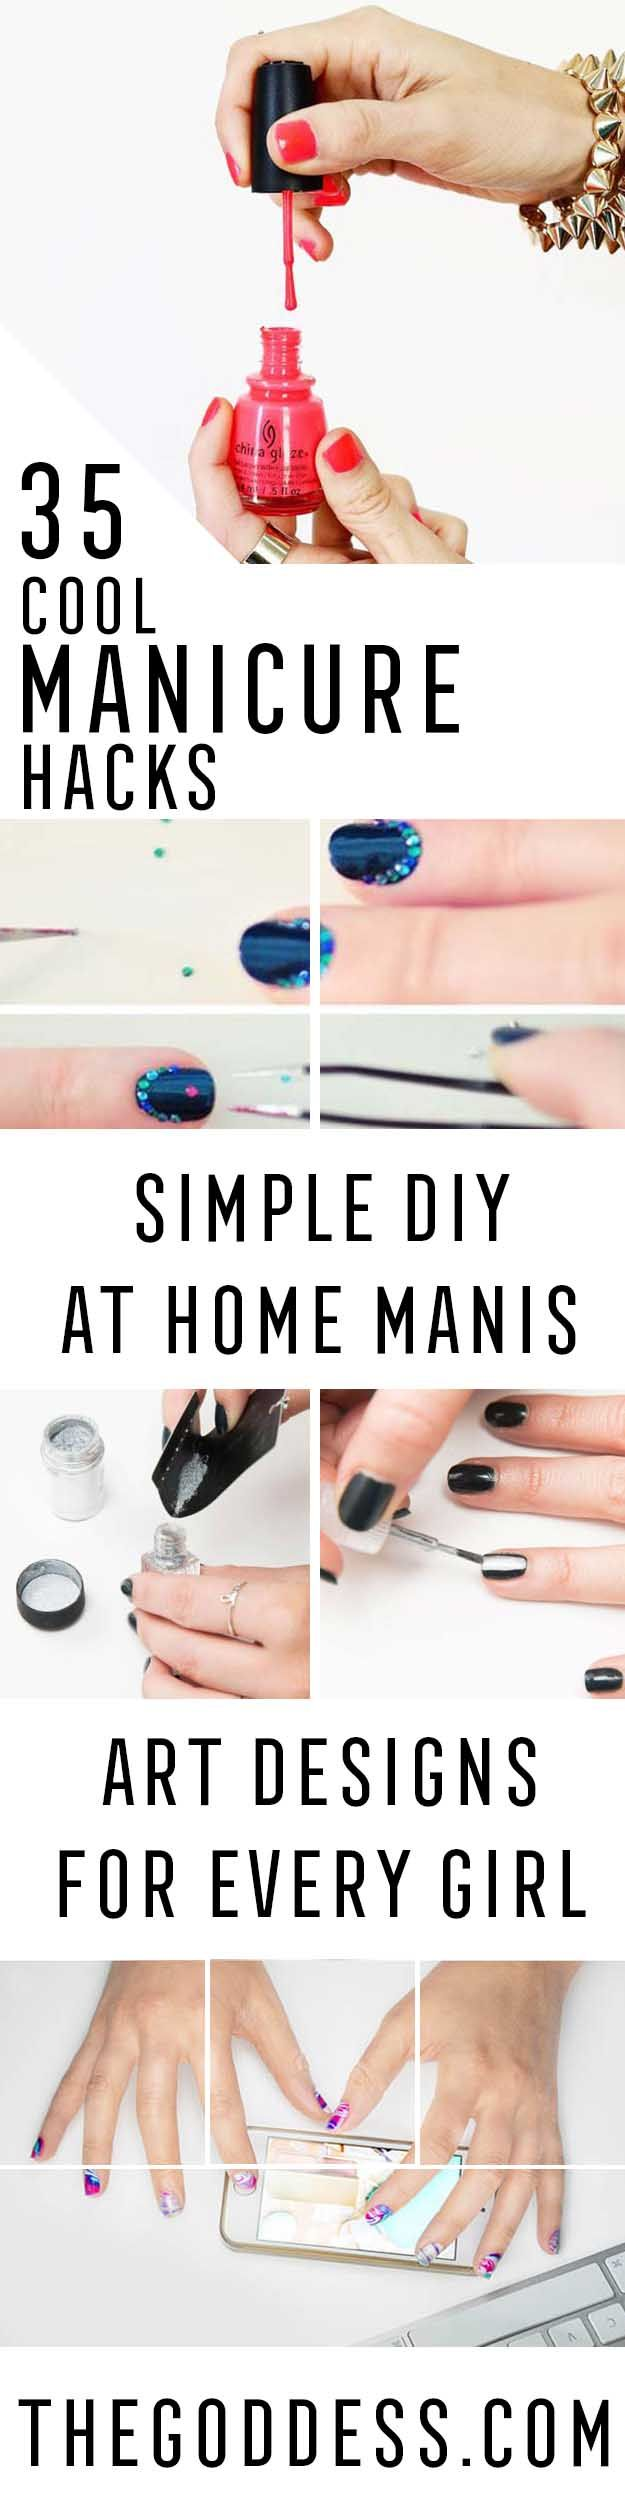 35 Cool Manicure Hacks | Nail hacks, Diy manicure and Beauty tricks